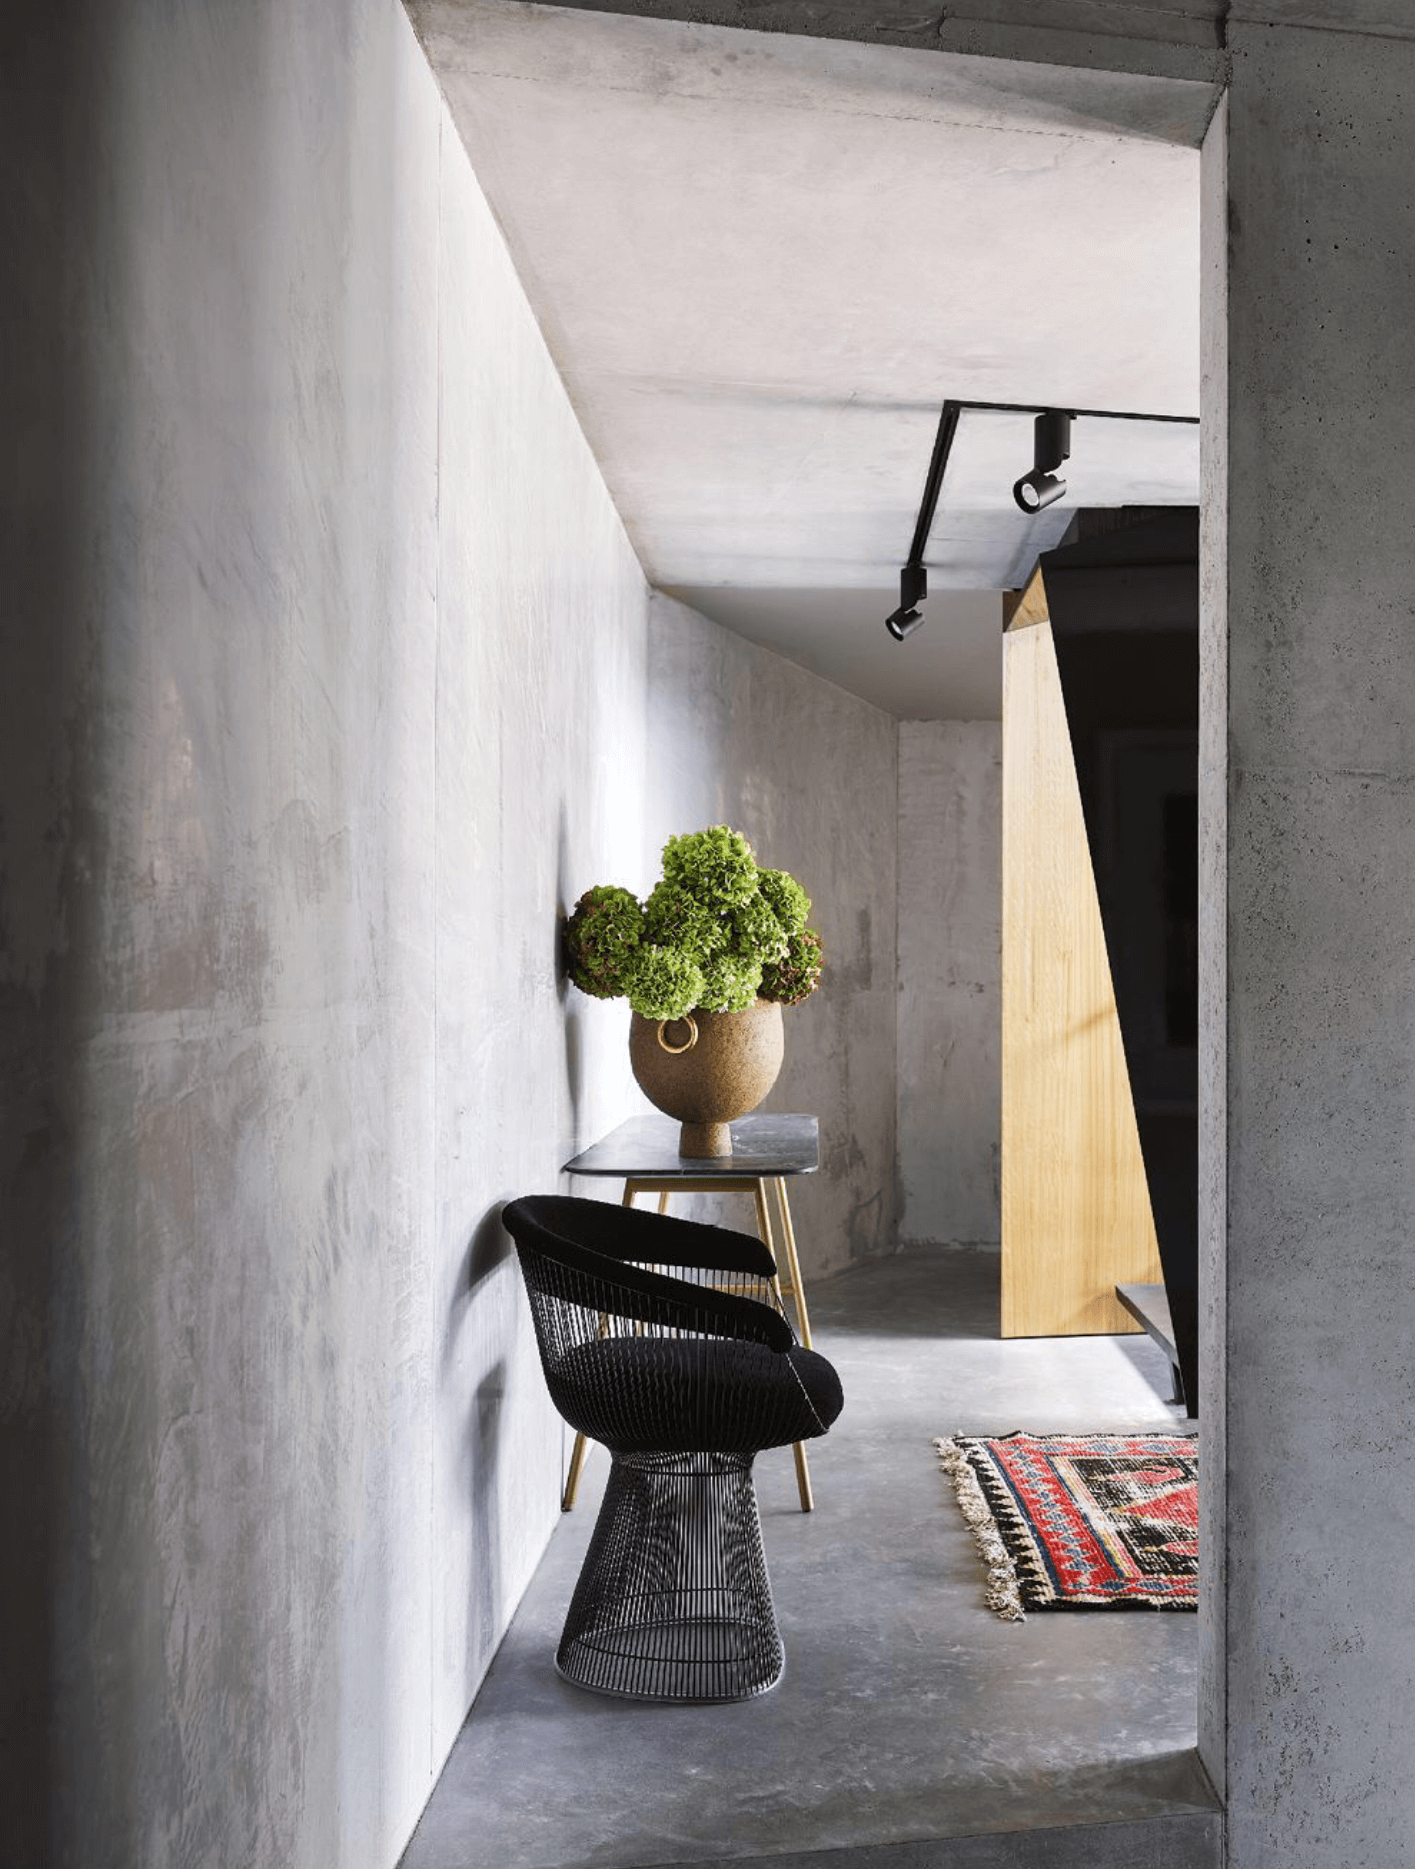 Copy of Concrete Foyer/Entryway with Platner armchair and a vintage Moroccan rug